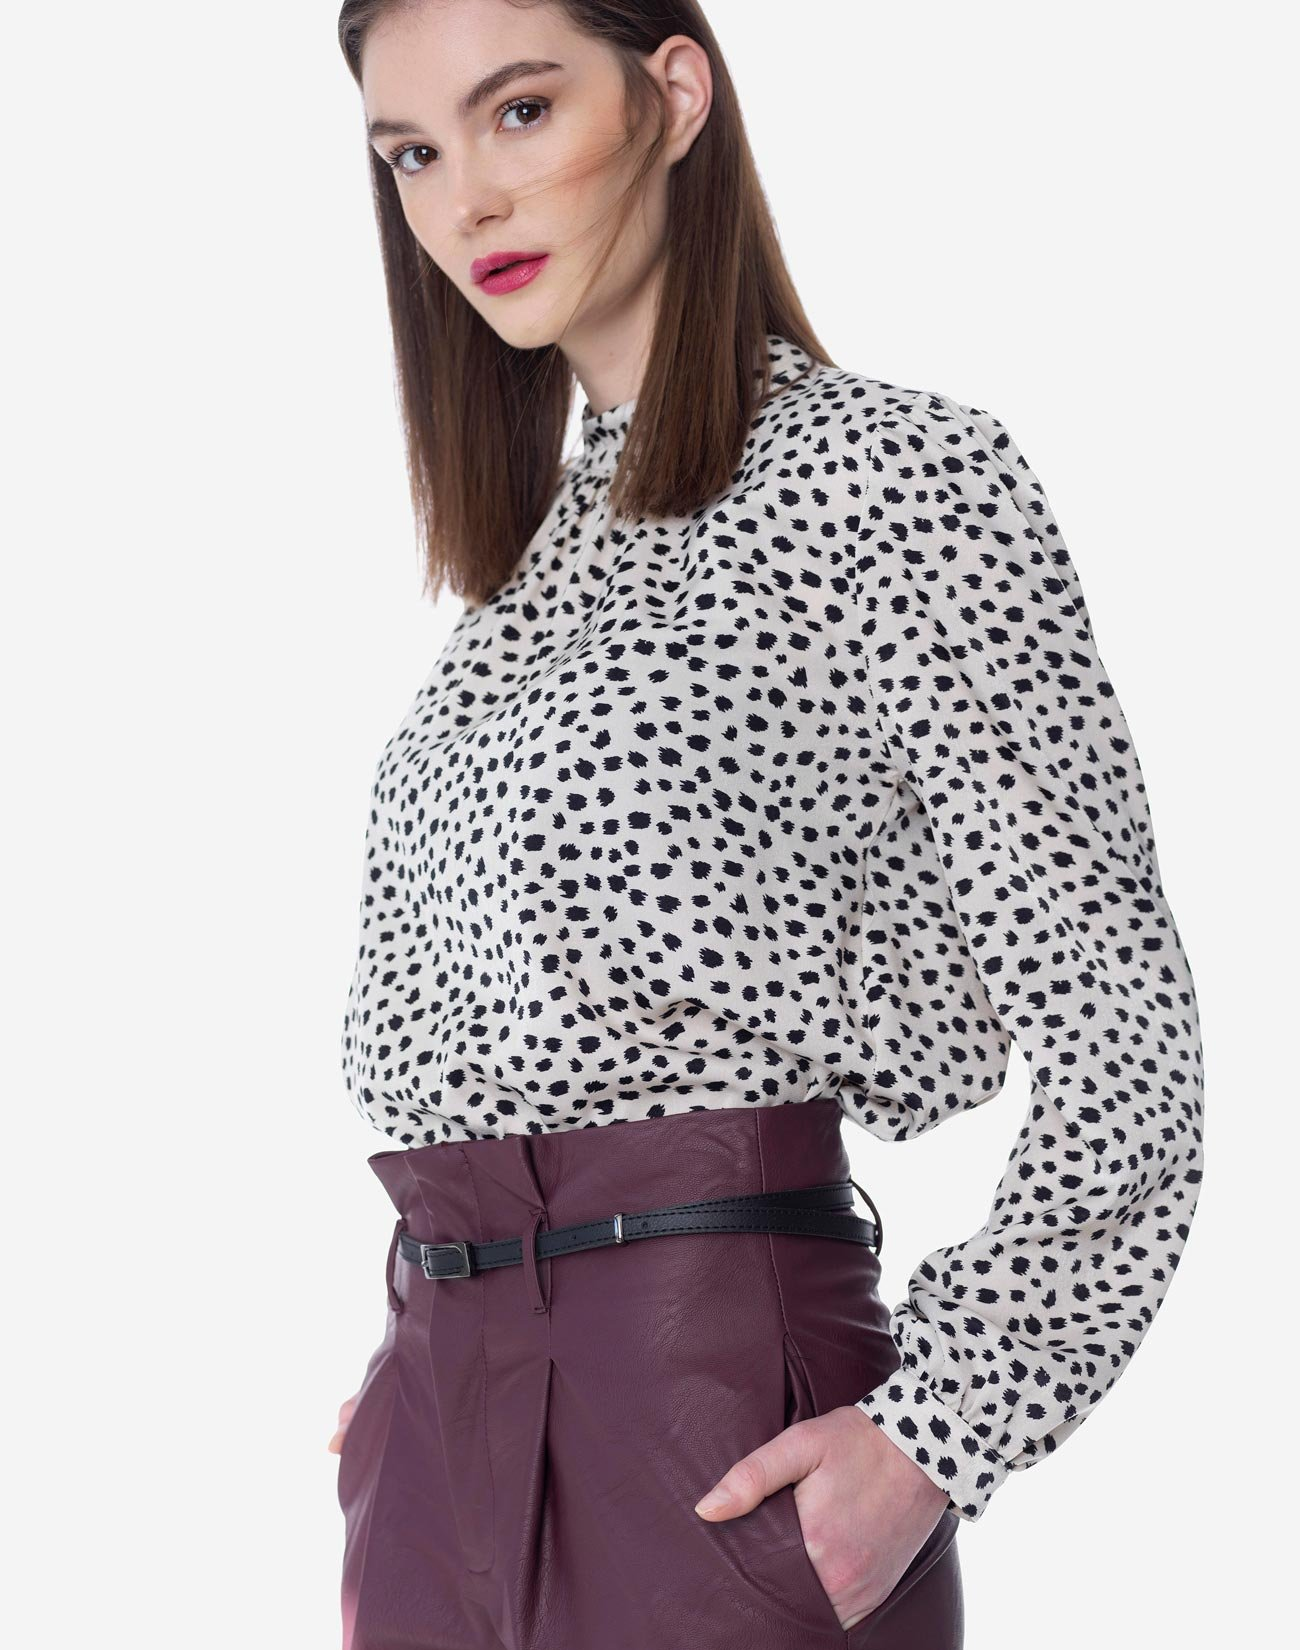 Printed top with high neck